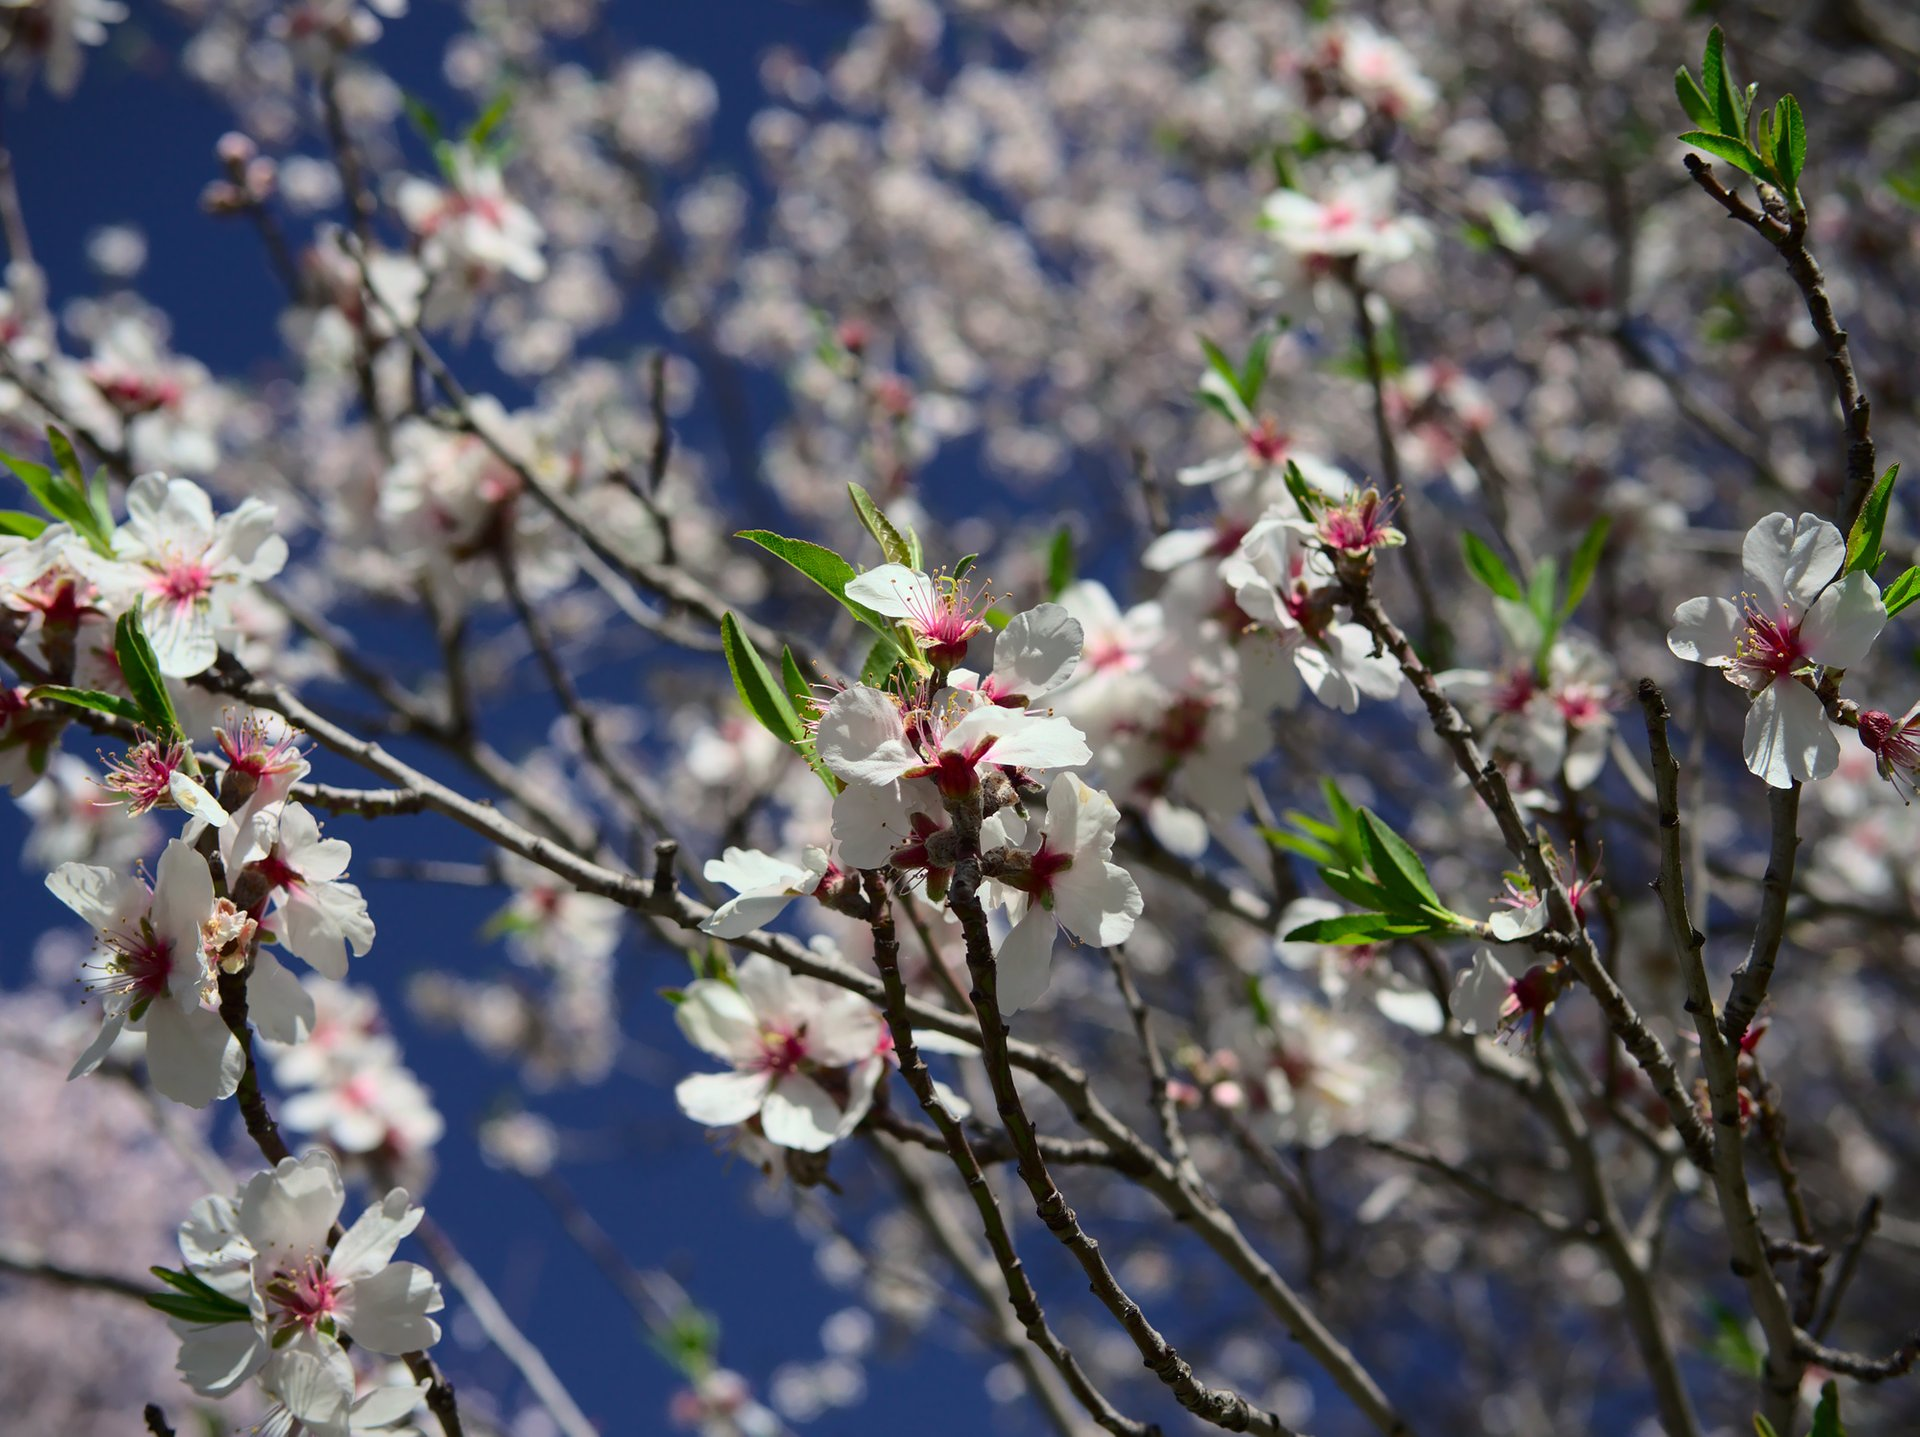 Blooming Almond Trees in Cyprus 2020 - Best Time